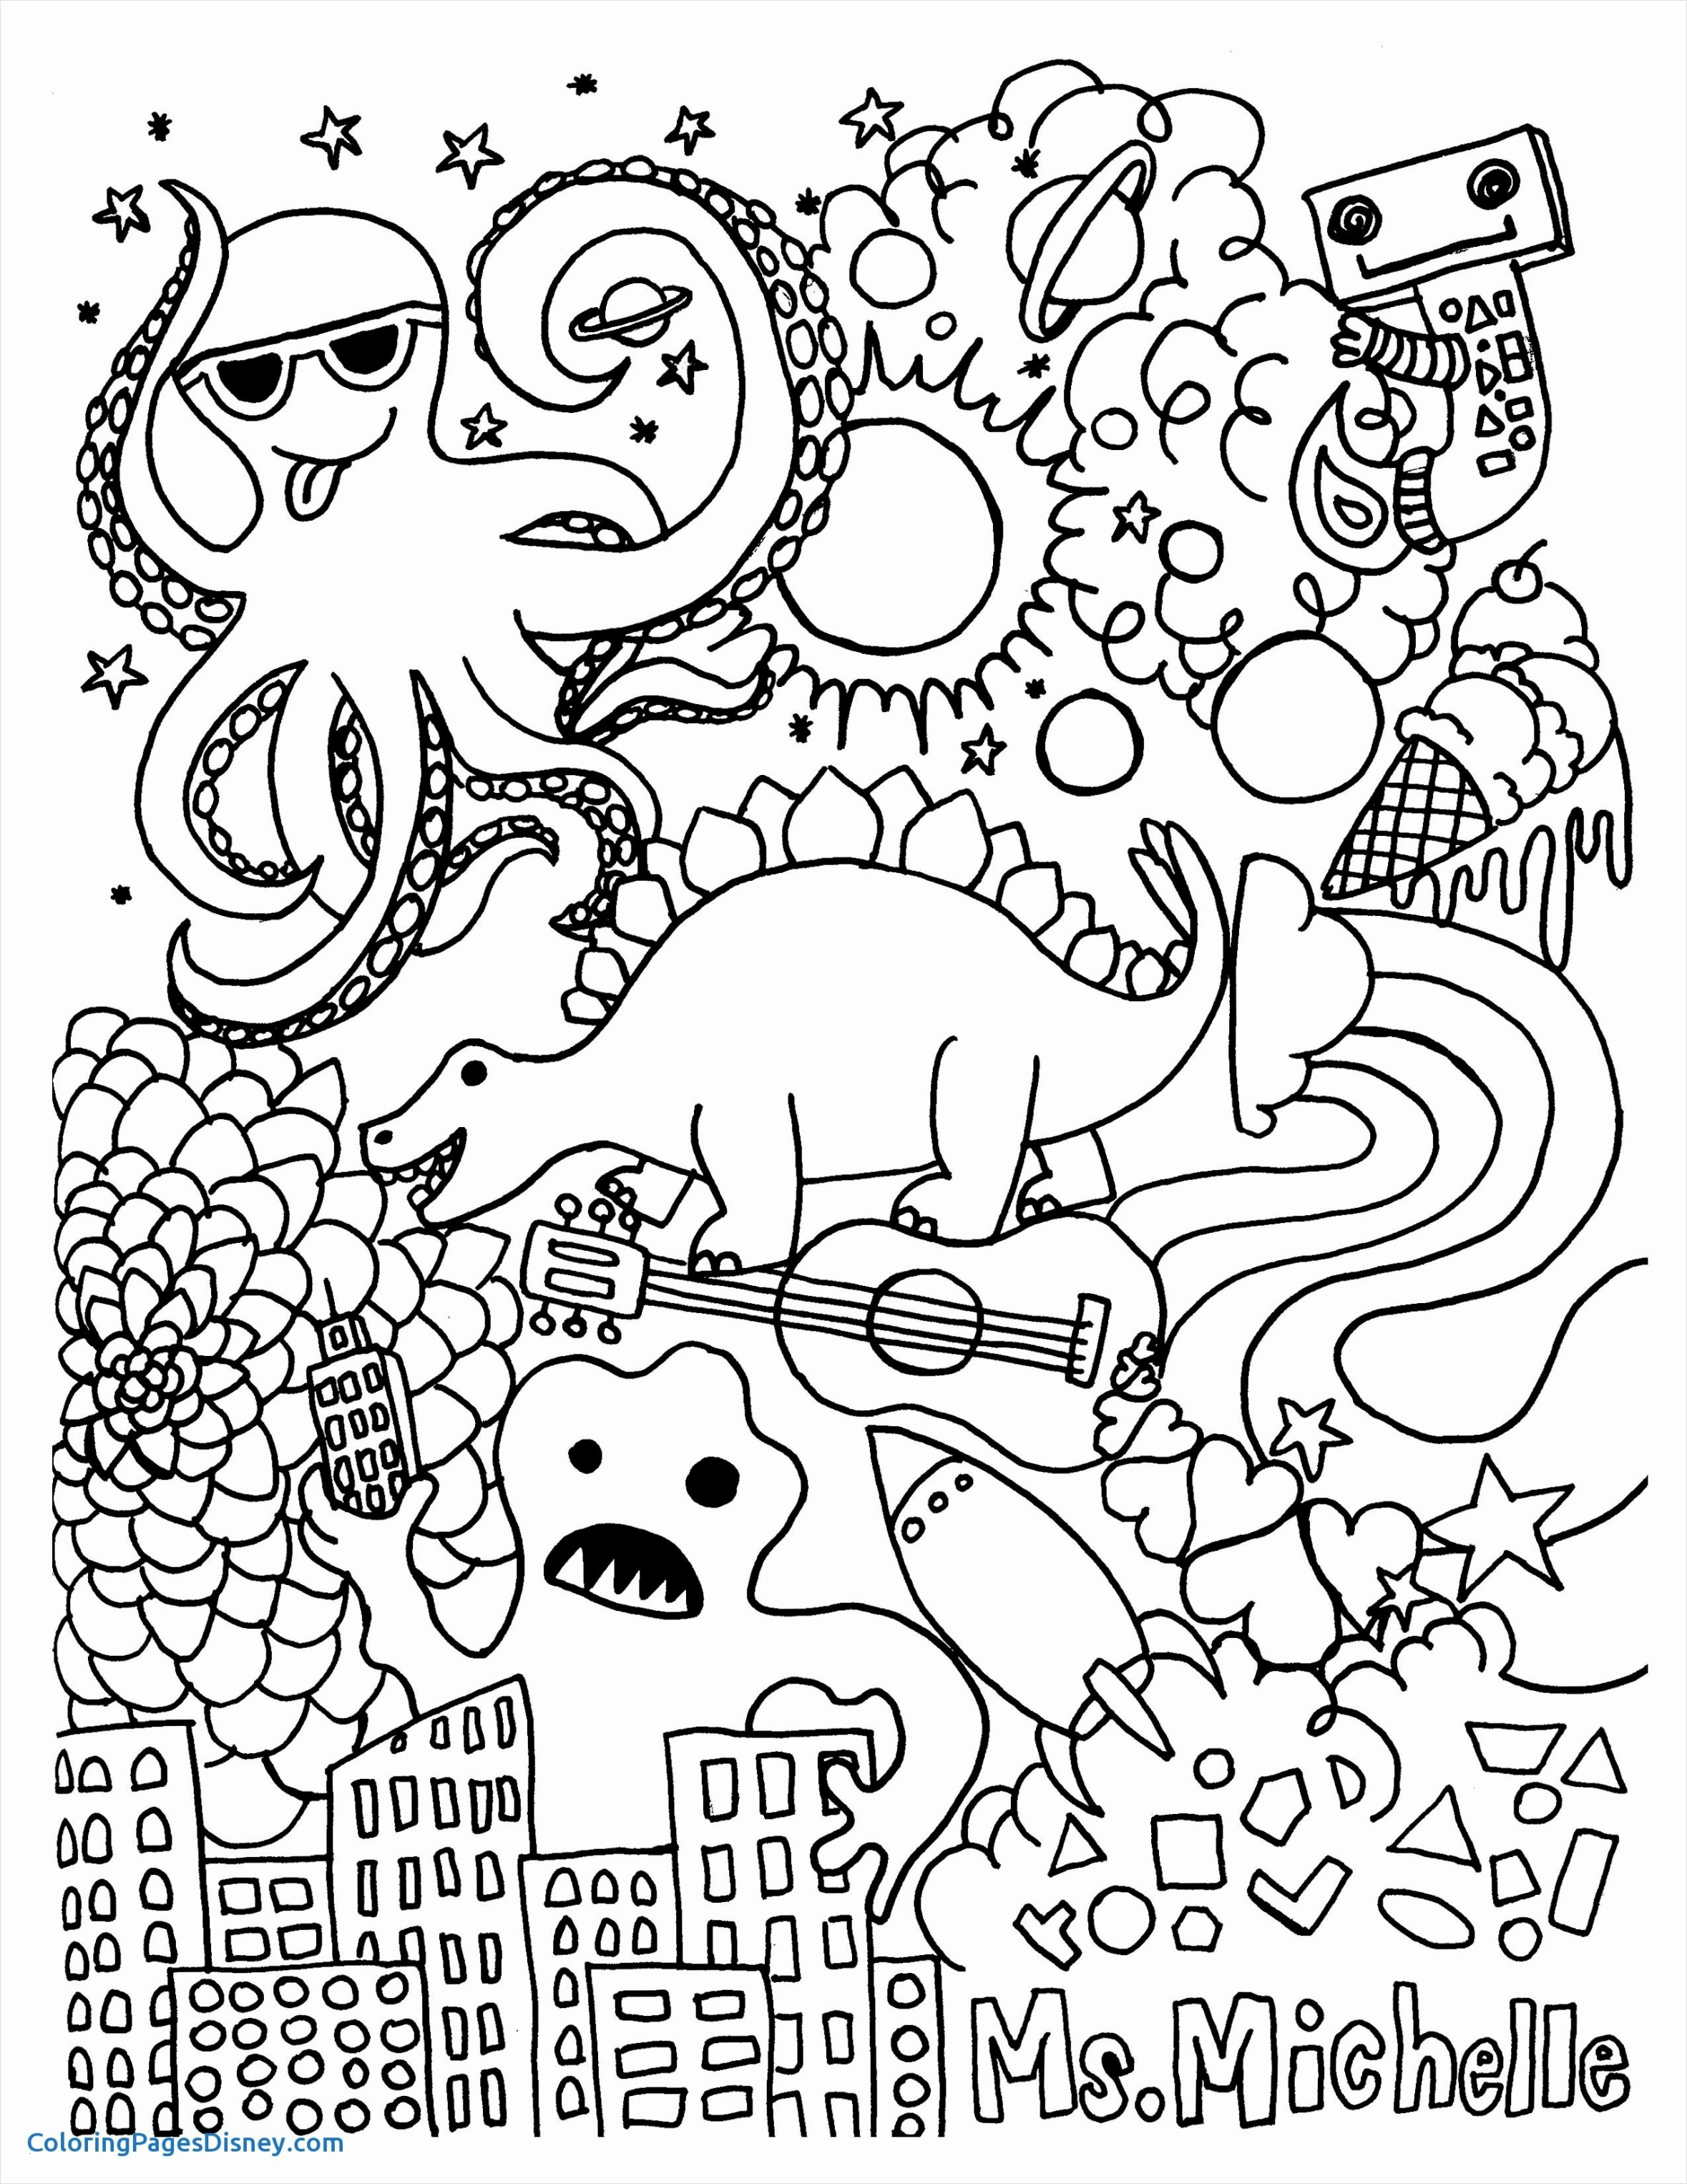 Hispanic Heritage Month Coloring Pages  Download 14m - Free Download